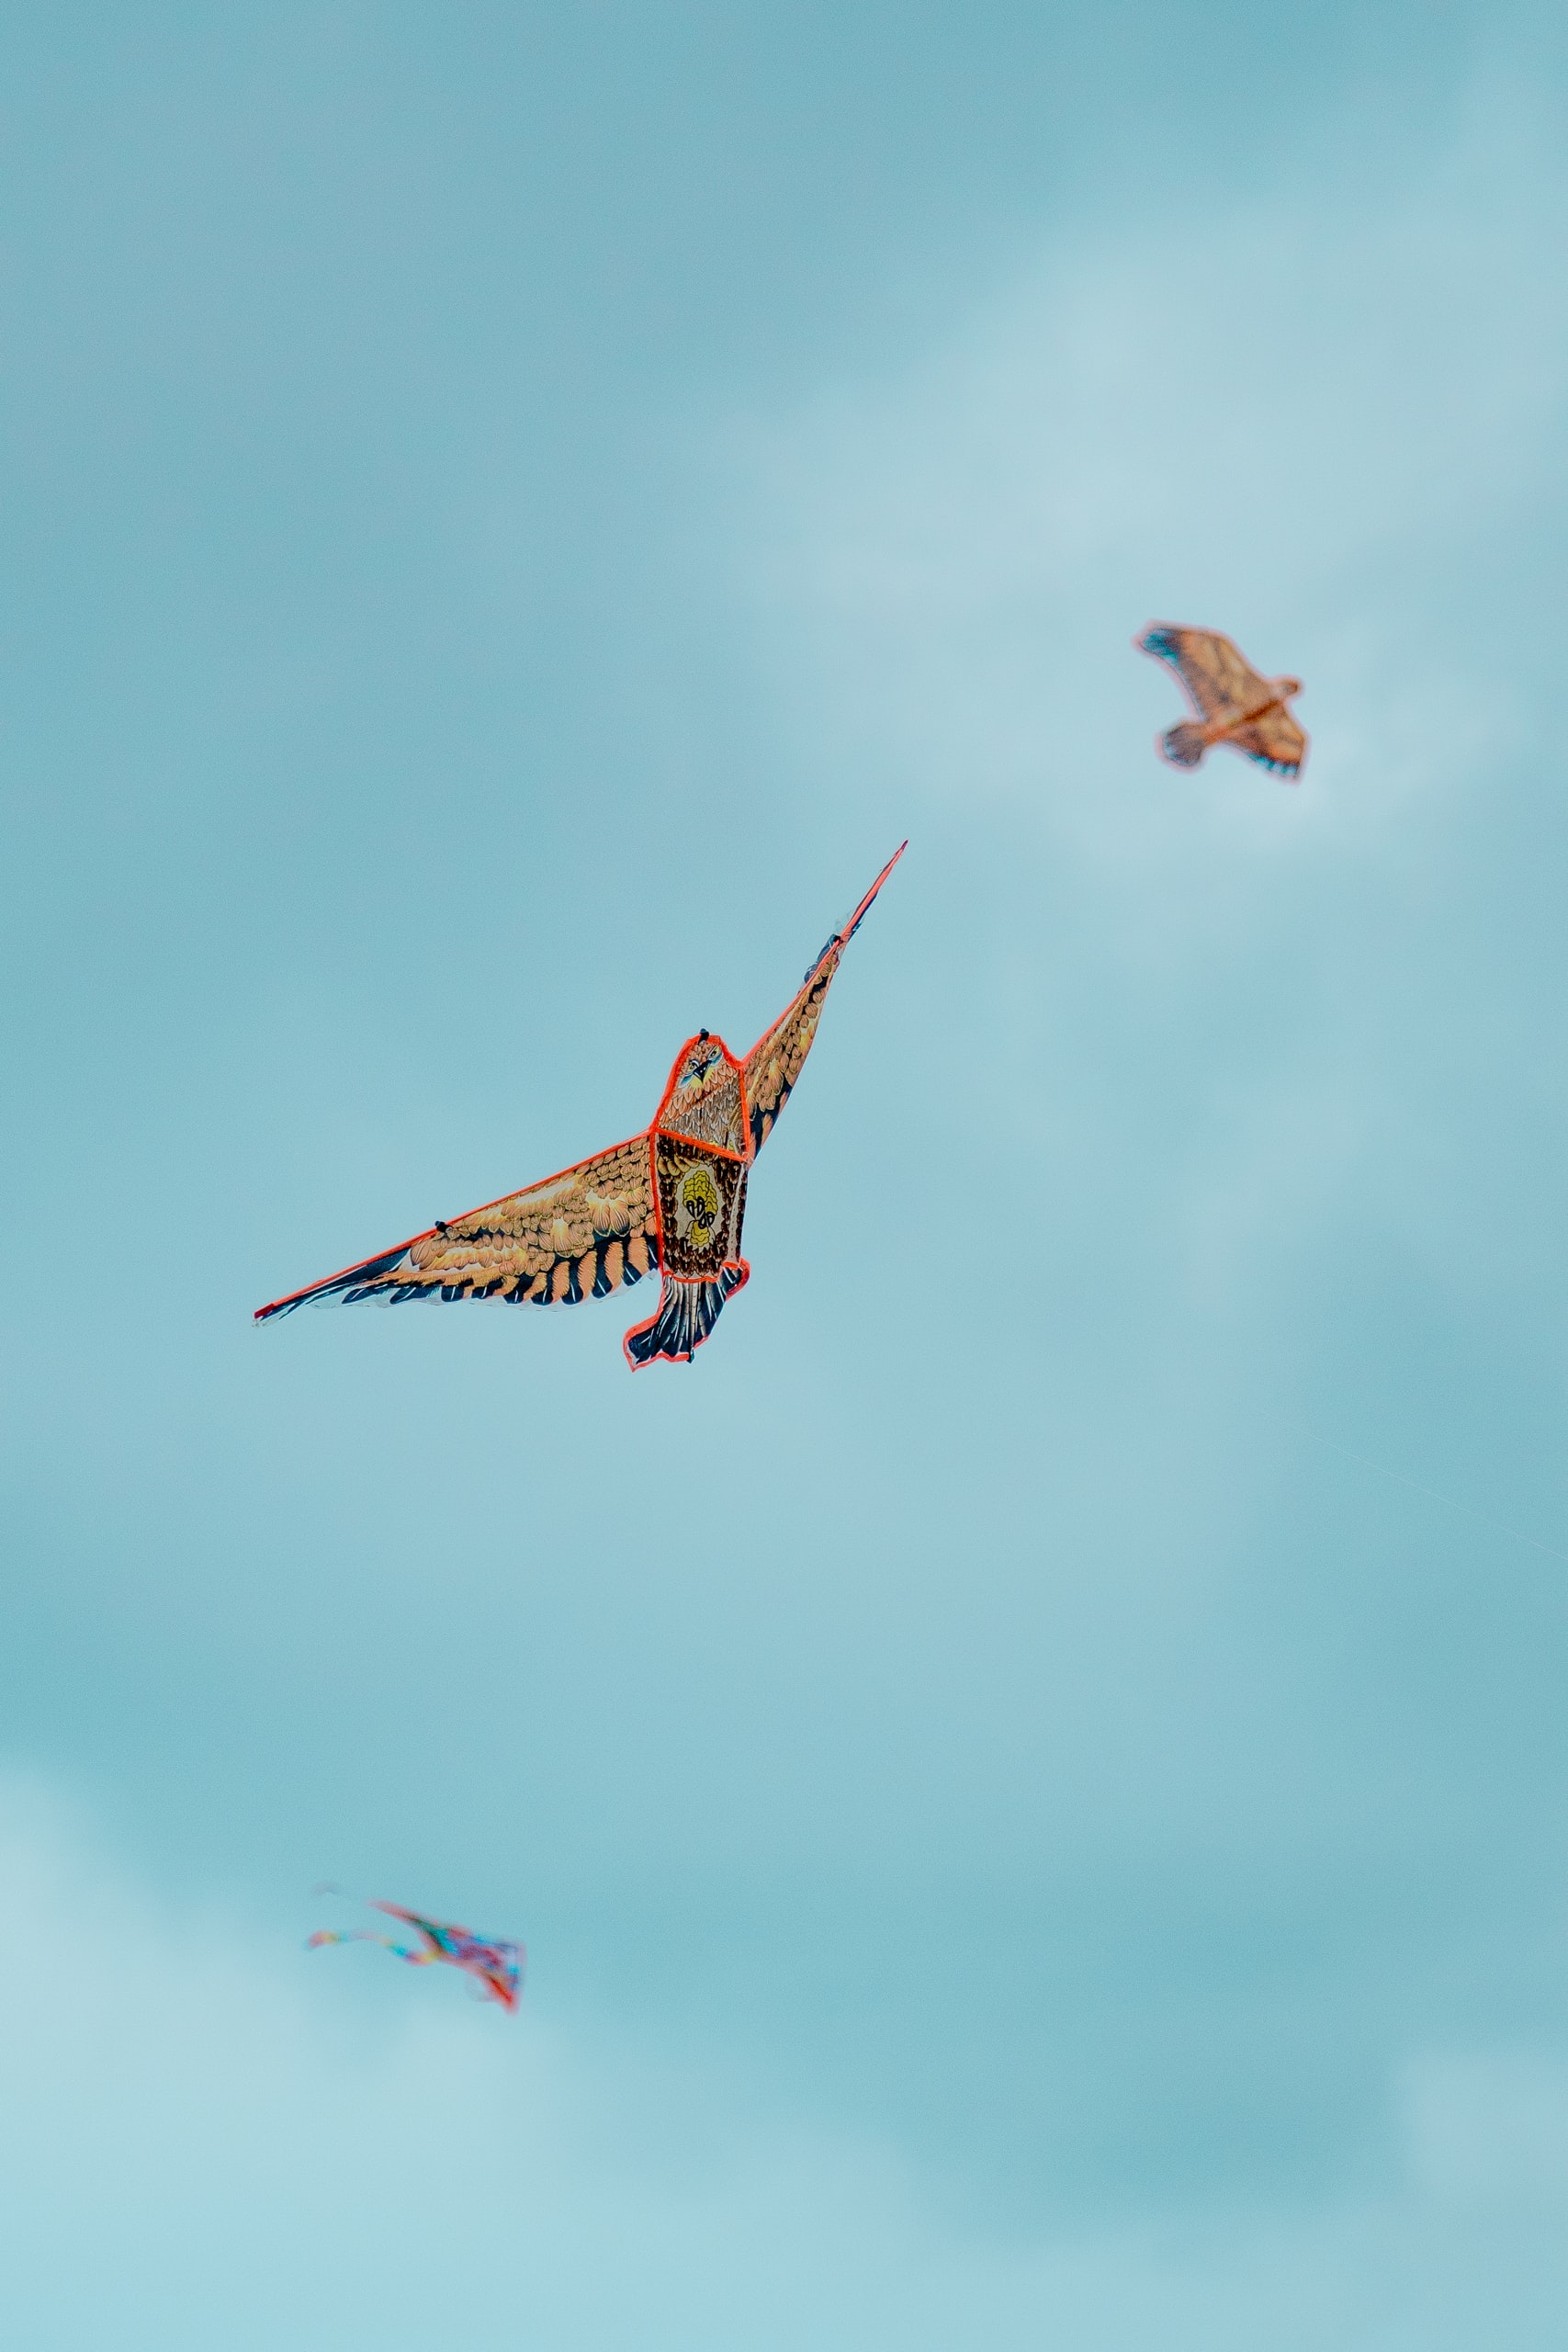 tilt shift lens photography of three kites